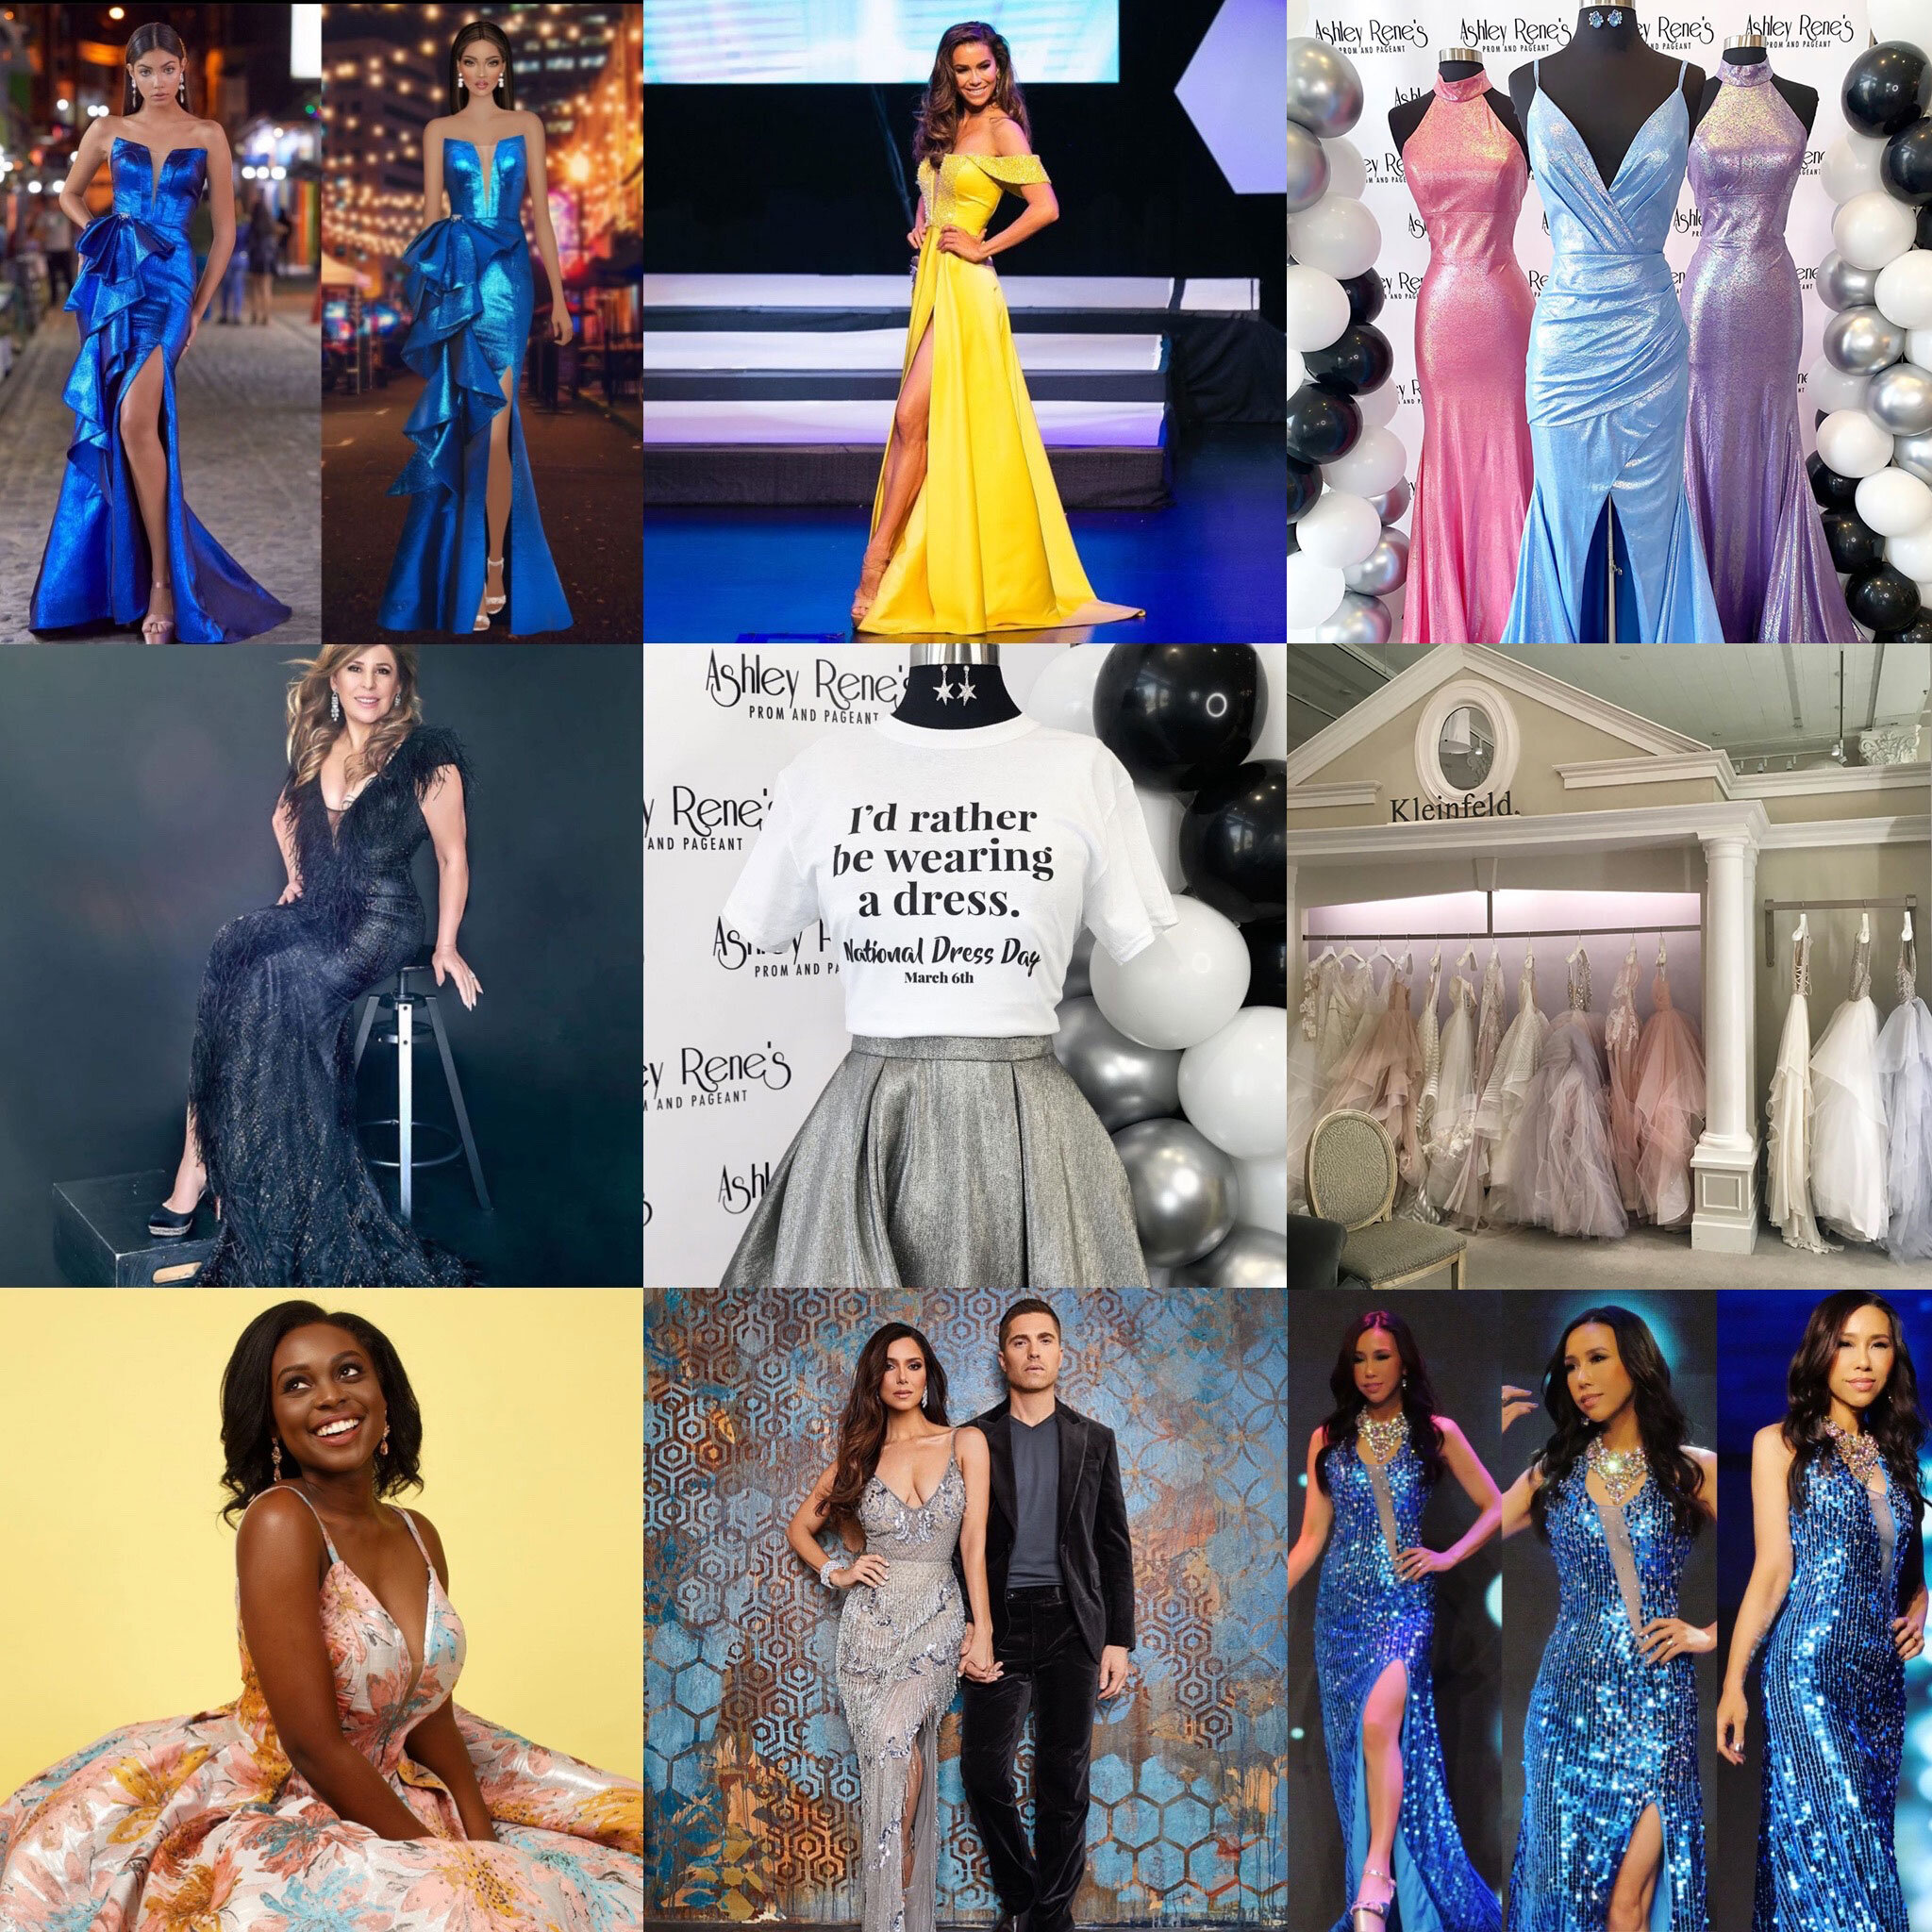 Blog National Dress Day March 6th